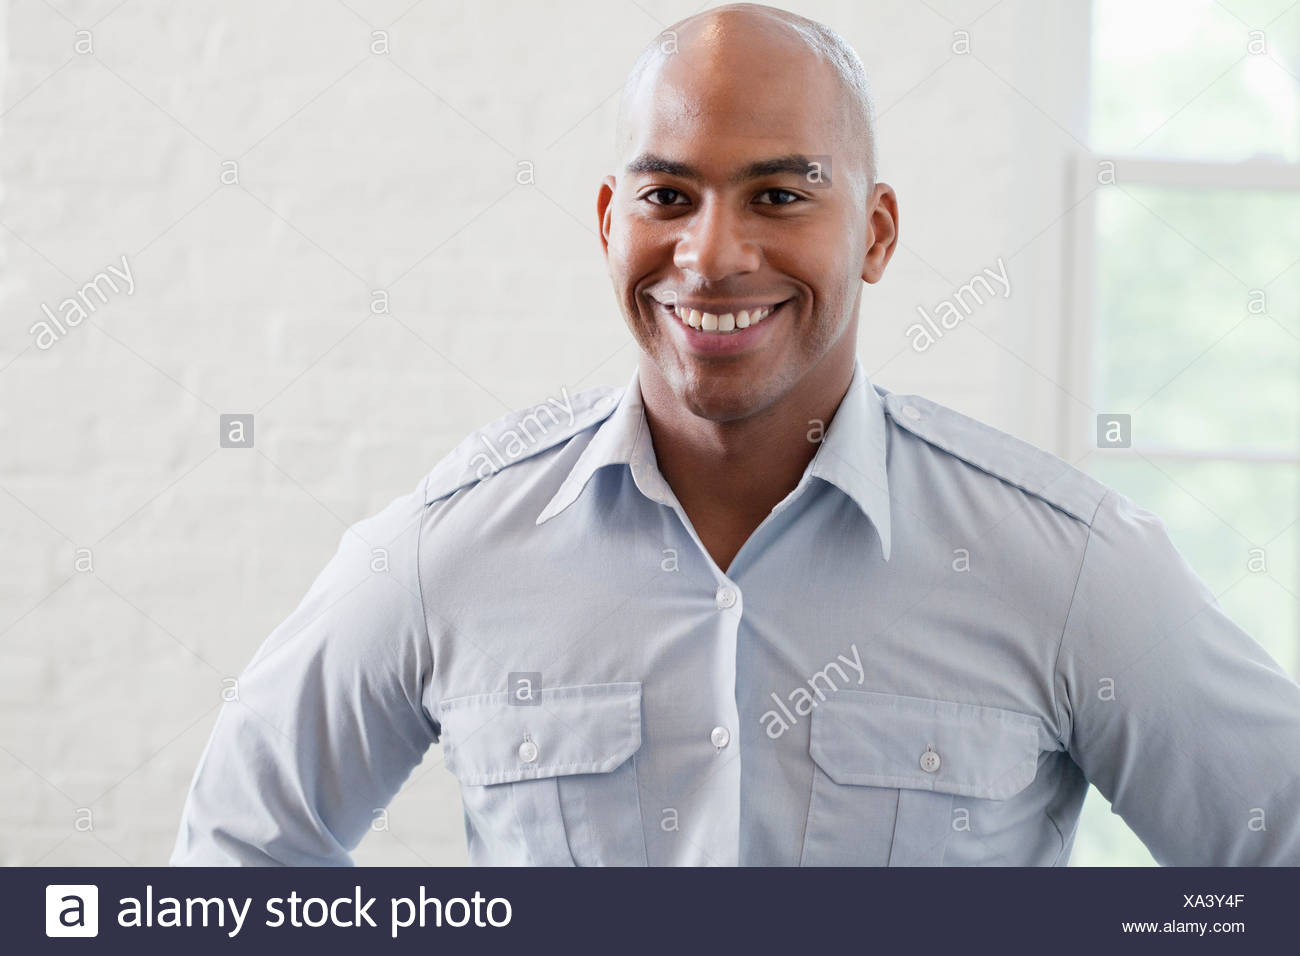 Young office worker smiling, portrait Photo Stock